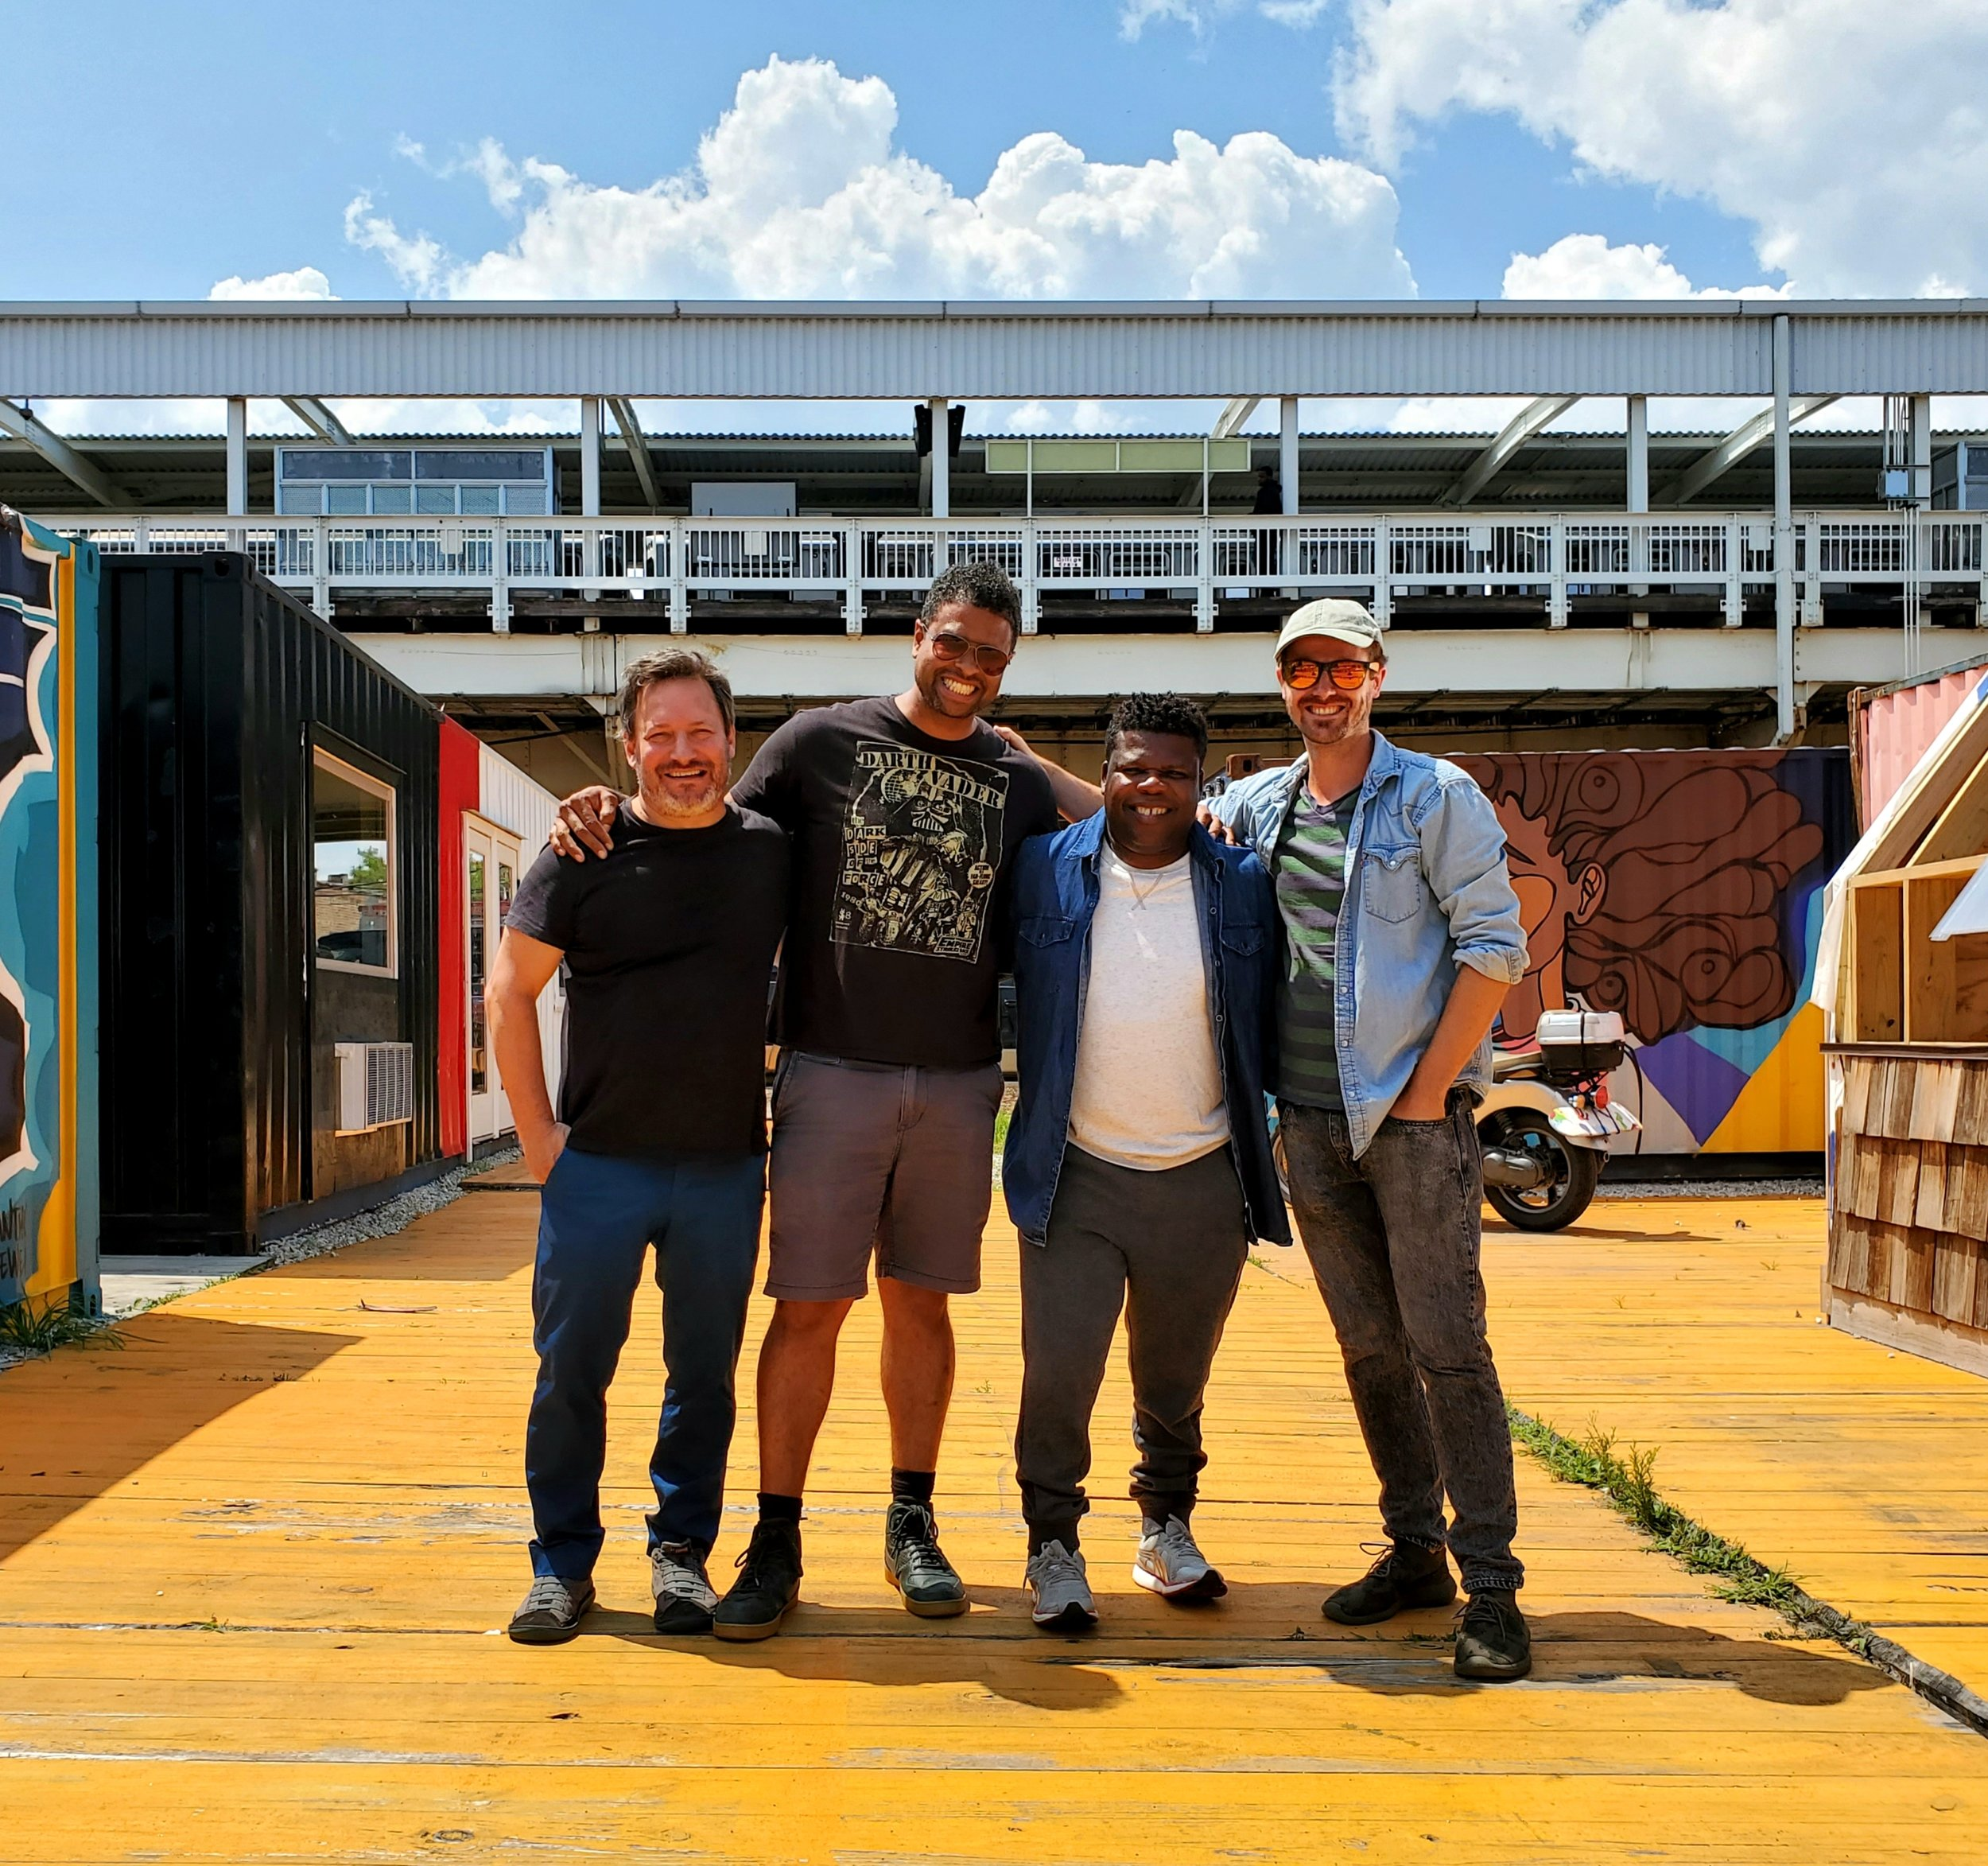 Floating Museum directors (left to right): Andrew Schachman, Faheem Majeed, Avery R. Young, and Jeremiah Hulsebos-Spofford at Boxville next the CTA Green Line station at 51st Street.